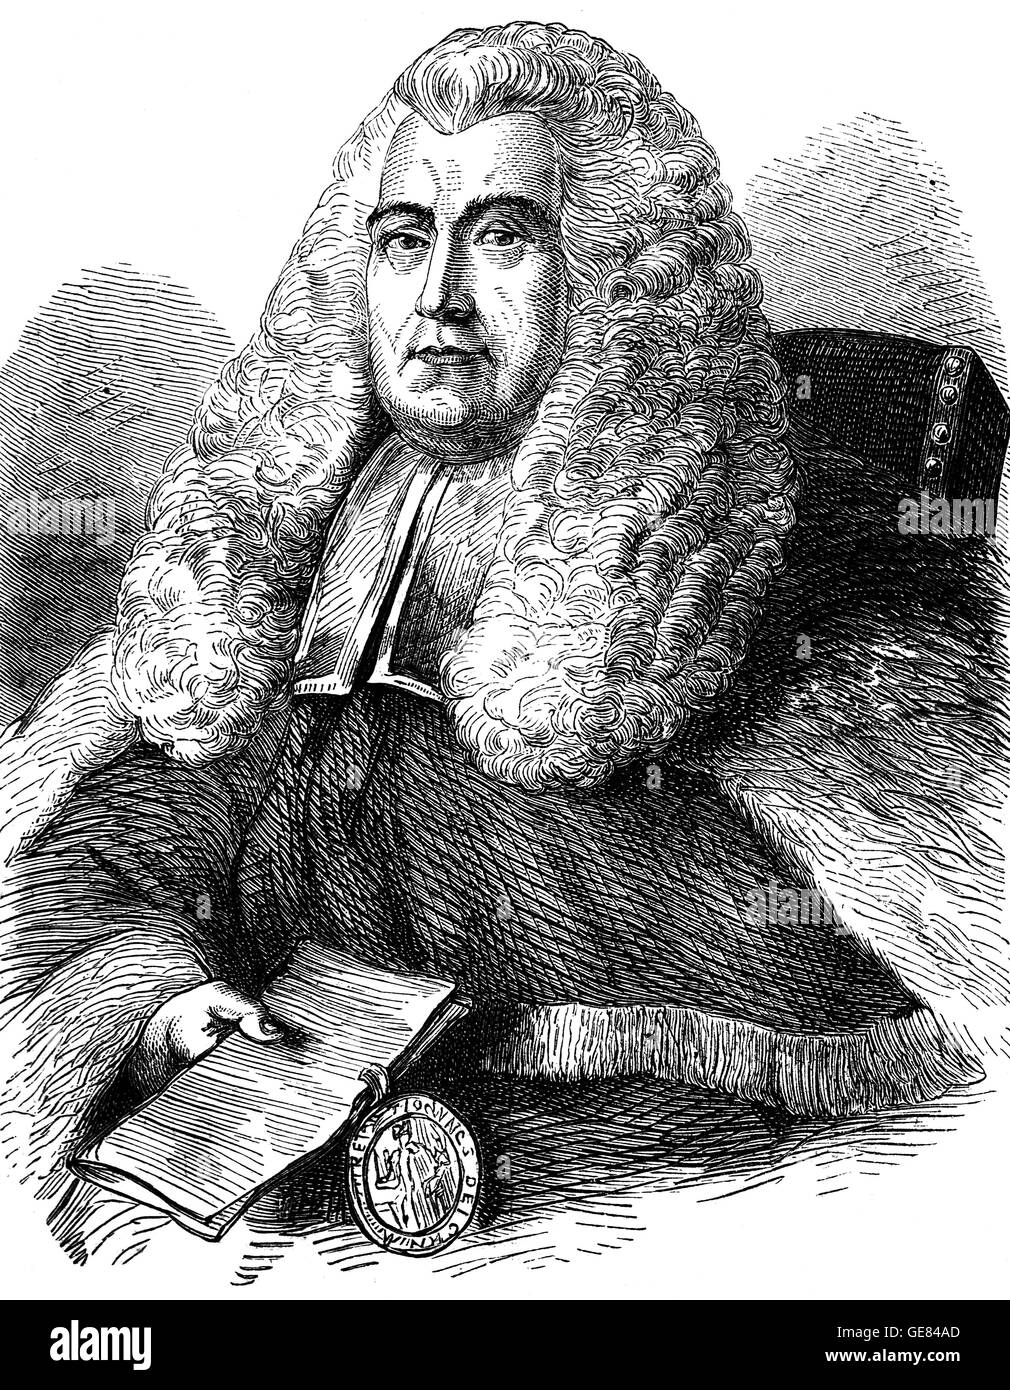 Sir William Blackstone (1723 – 1780) was an English jurist, judge and Tory politician of the eighteenth century. - Stock Image